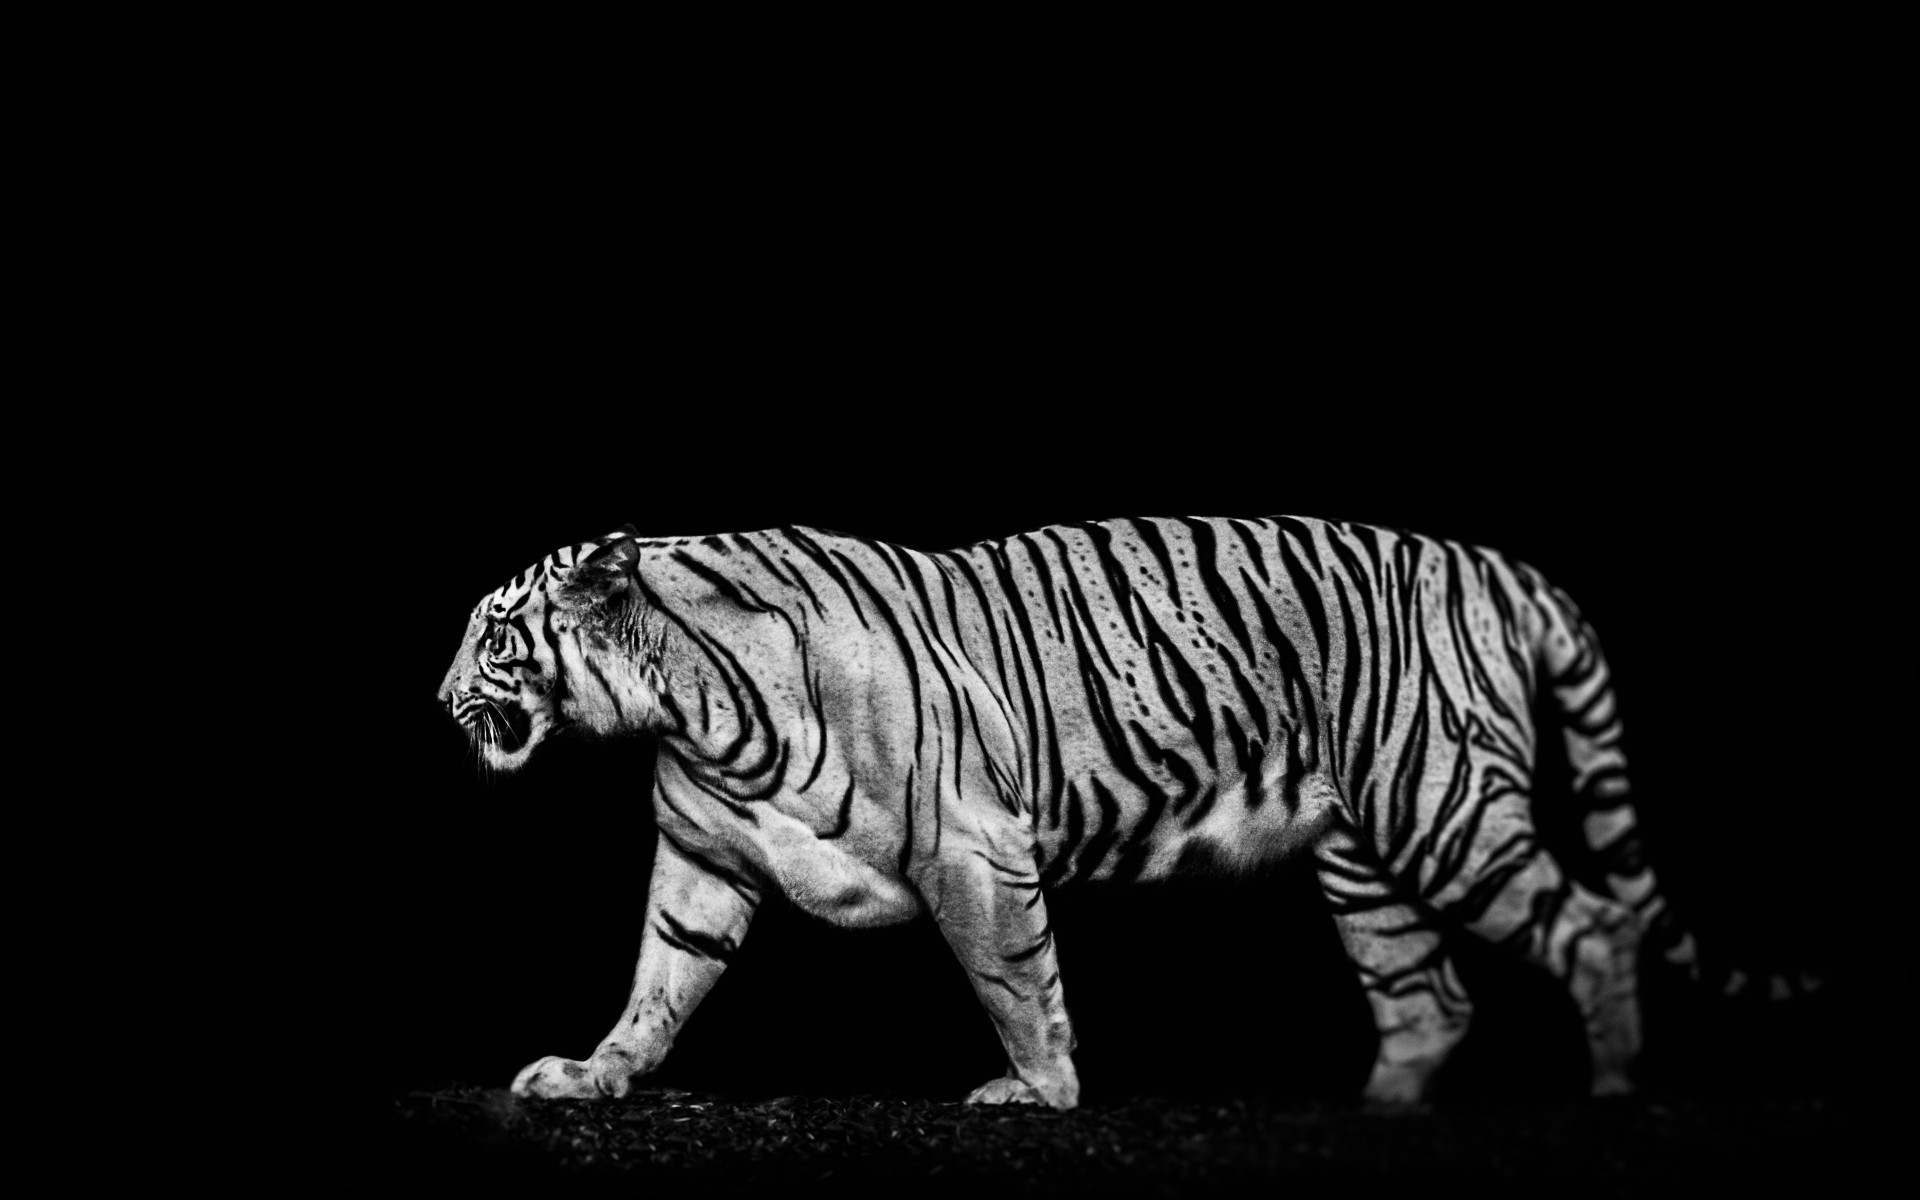 Tiger in the darkness | 1920x1200 wallpaper